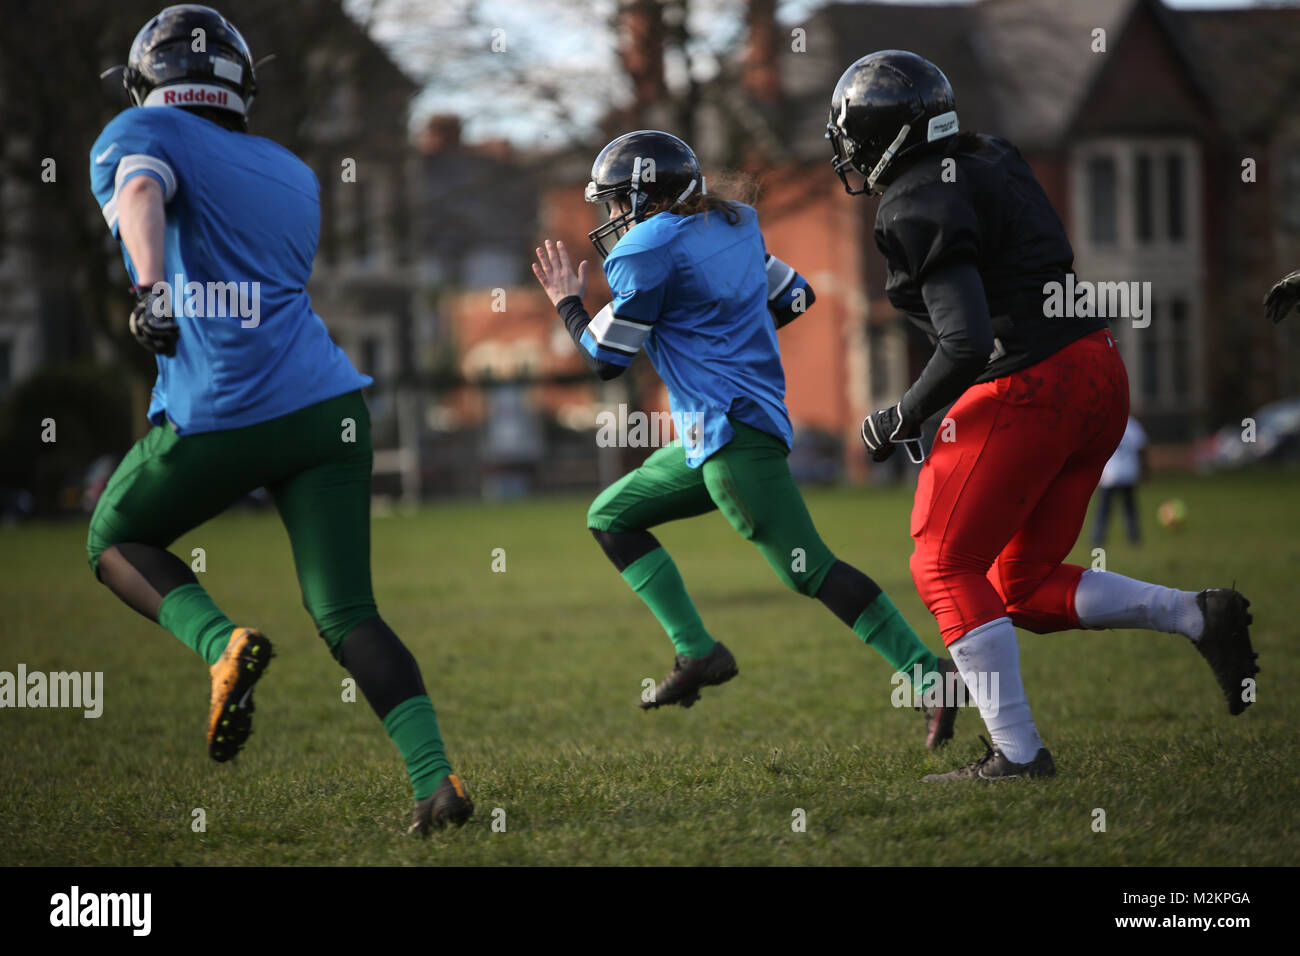 Cardiff, Wales, UK. 4th February 2018. The Cardiff Valkries, the only Welsh women's American Football team, - Stock Image